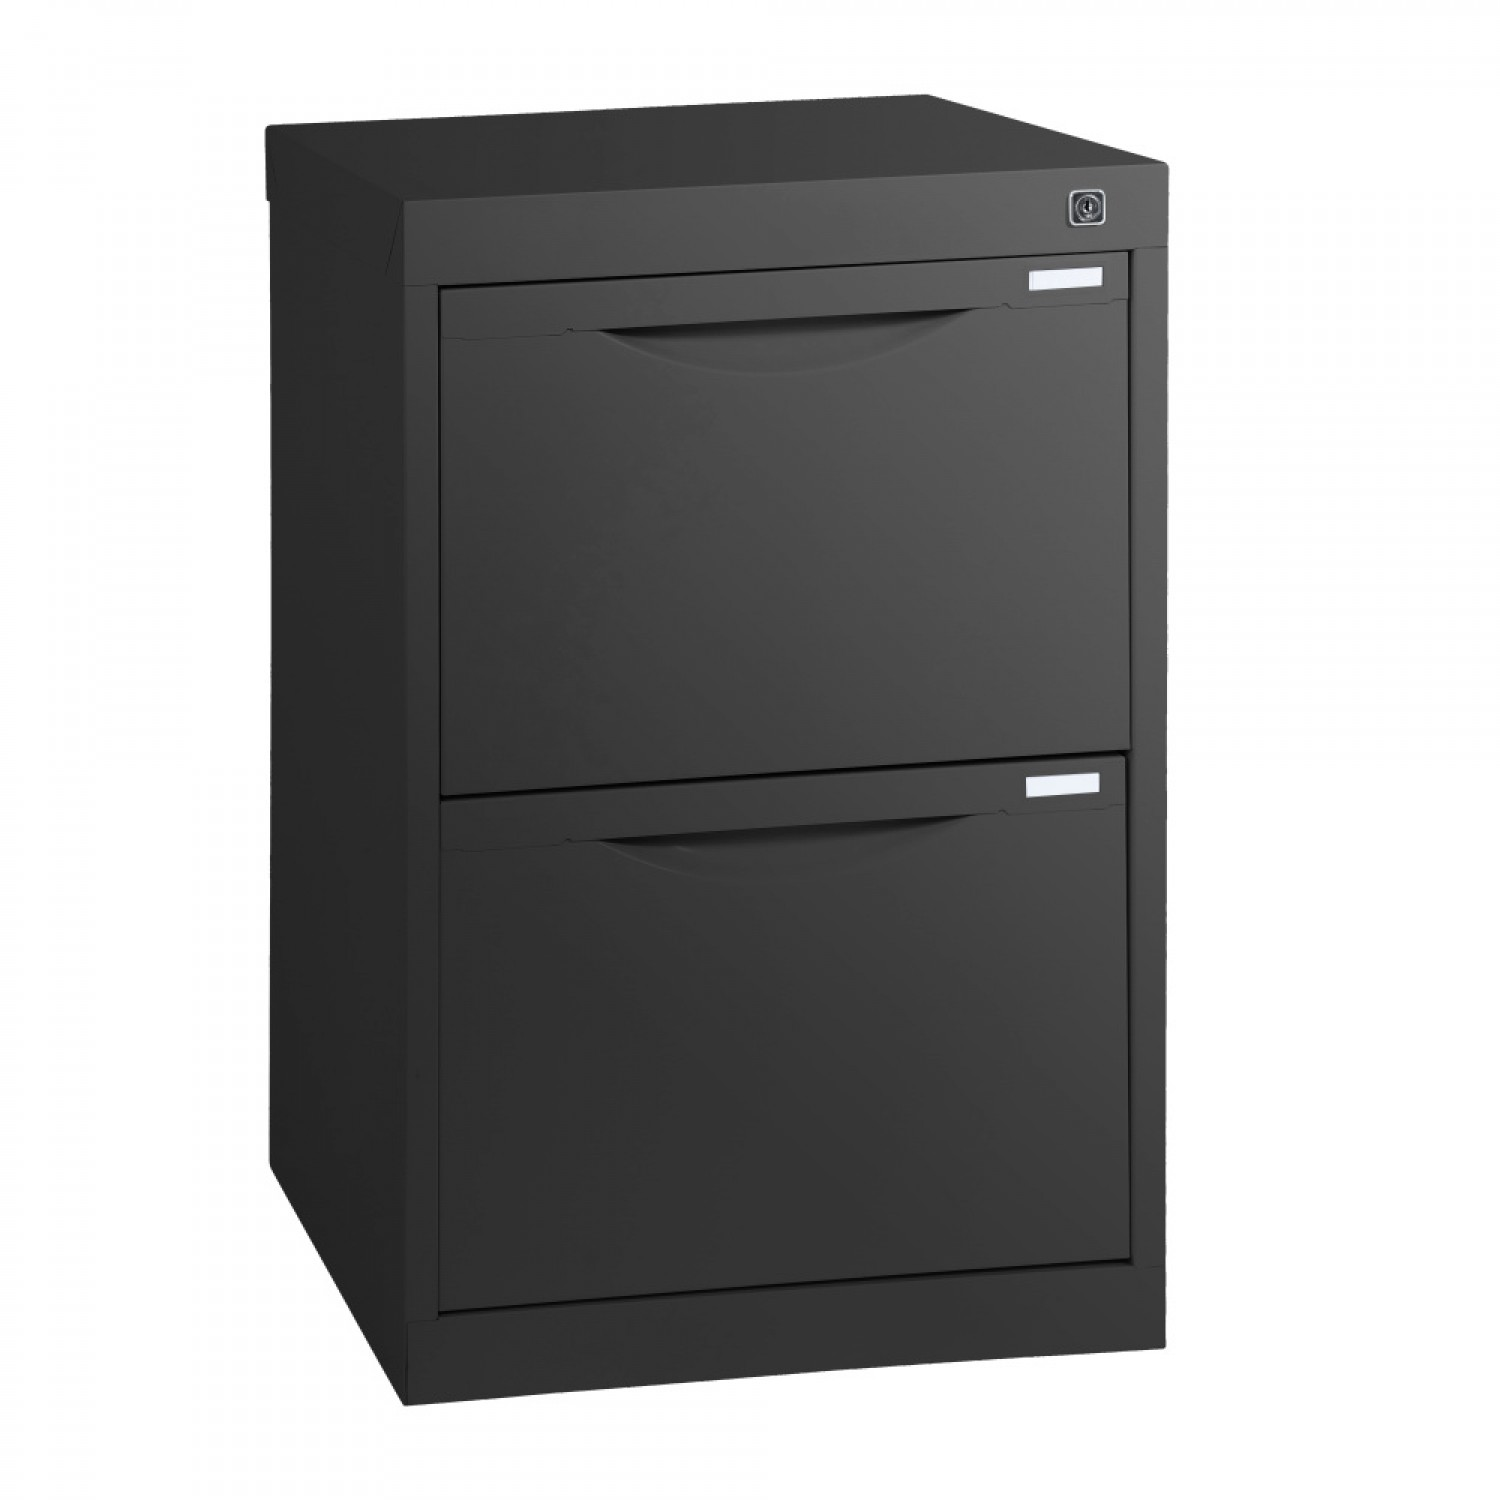 2 Drawer Statewide Homefile Filing Cabinet